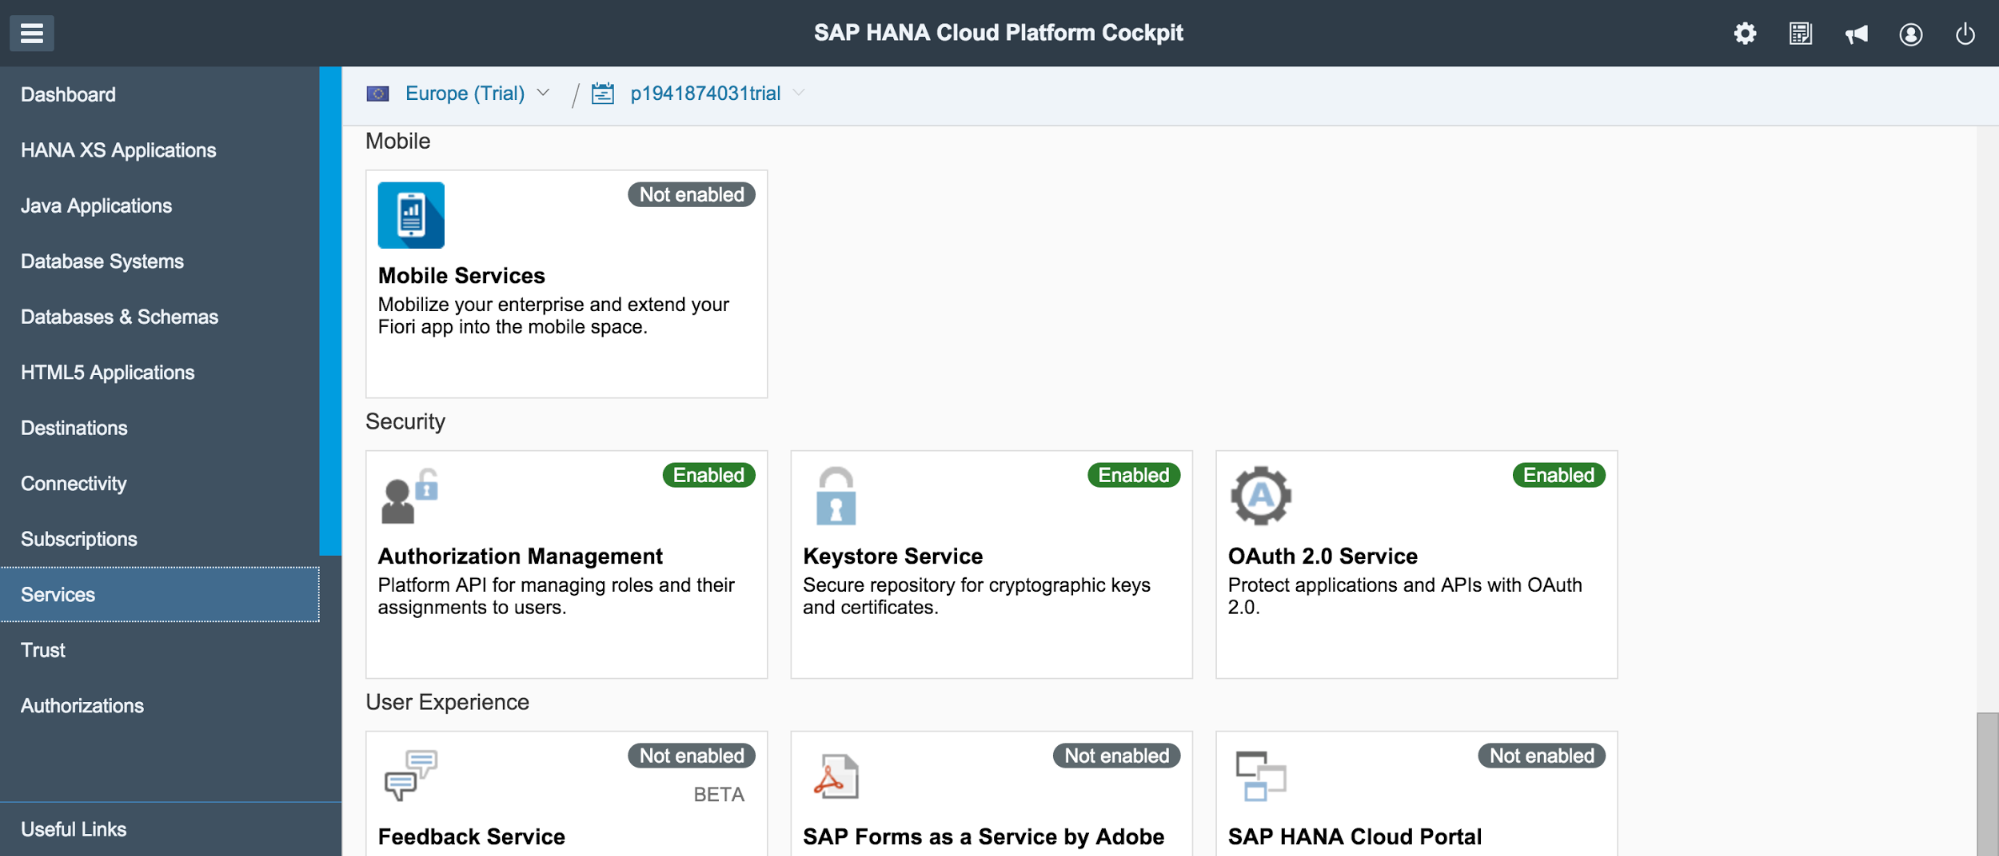 Creating a Mobile App in Hana Cloud Platform Mobile Services